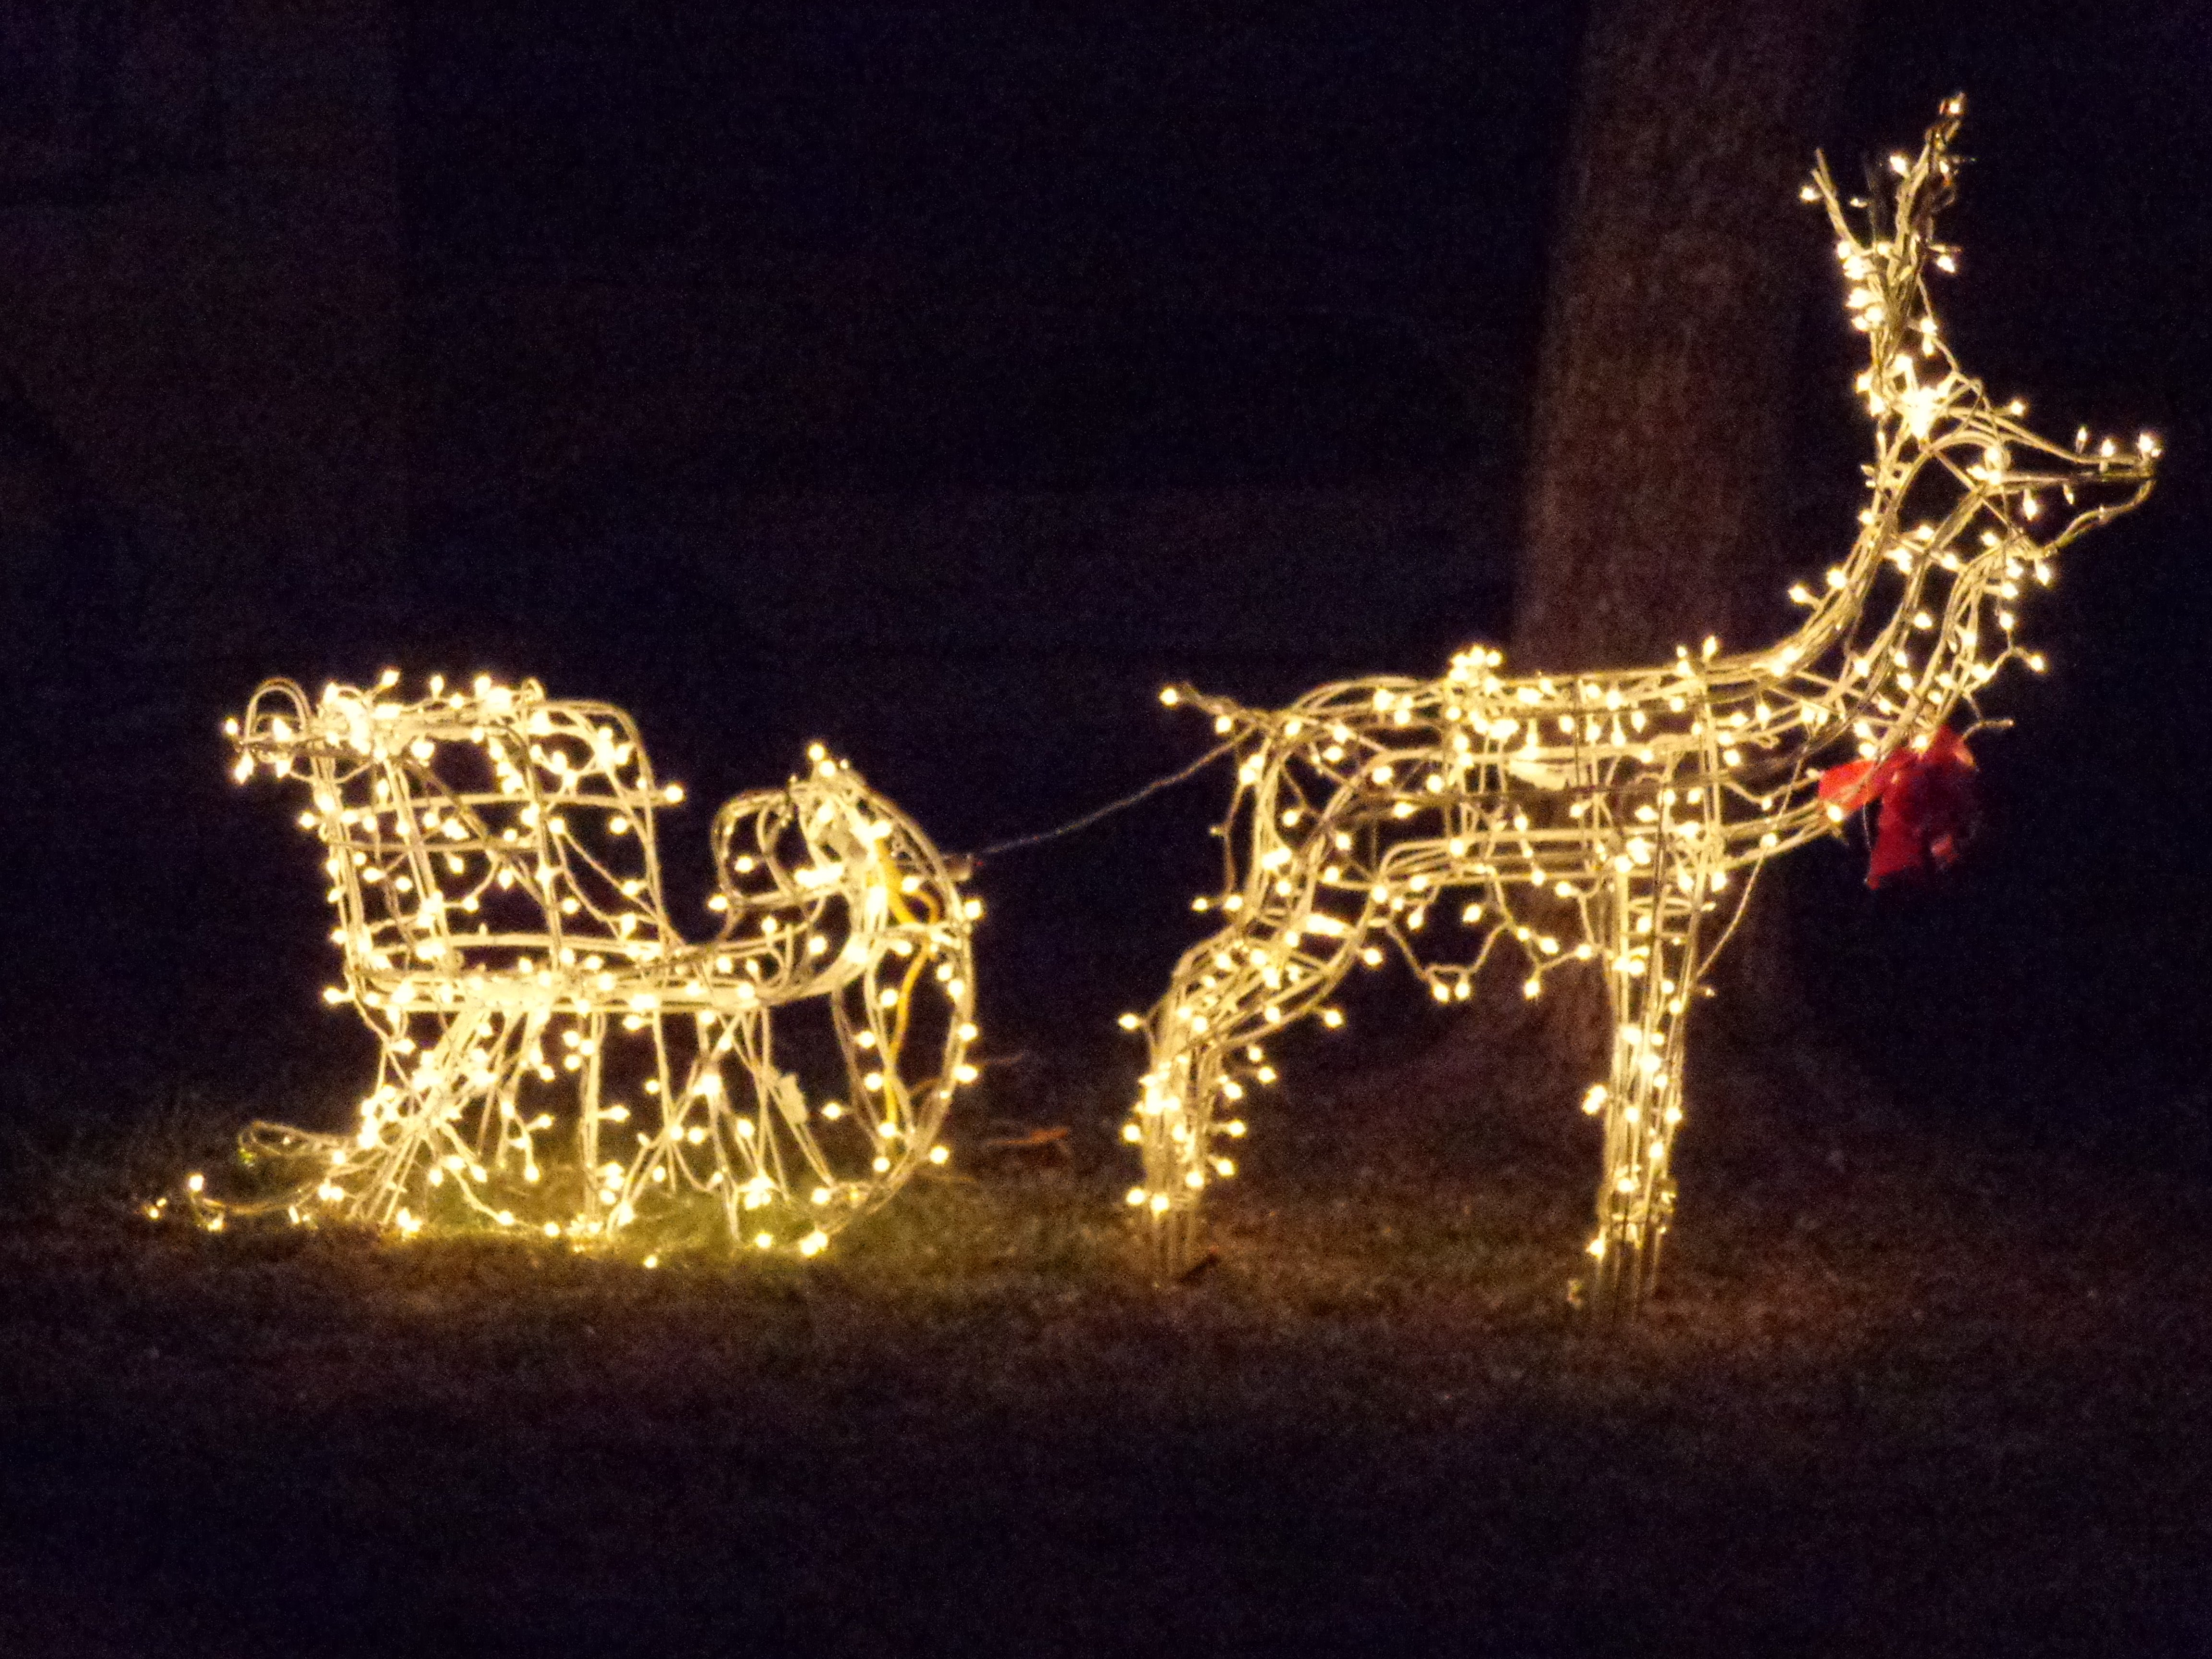 Christmas Lighted Horse Carriage Outdoor Decoration : Christmas reindeer pulling sleigh lighted holiday